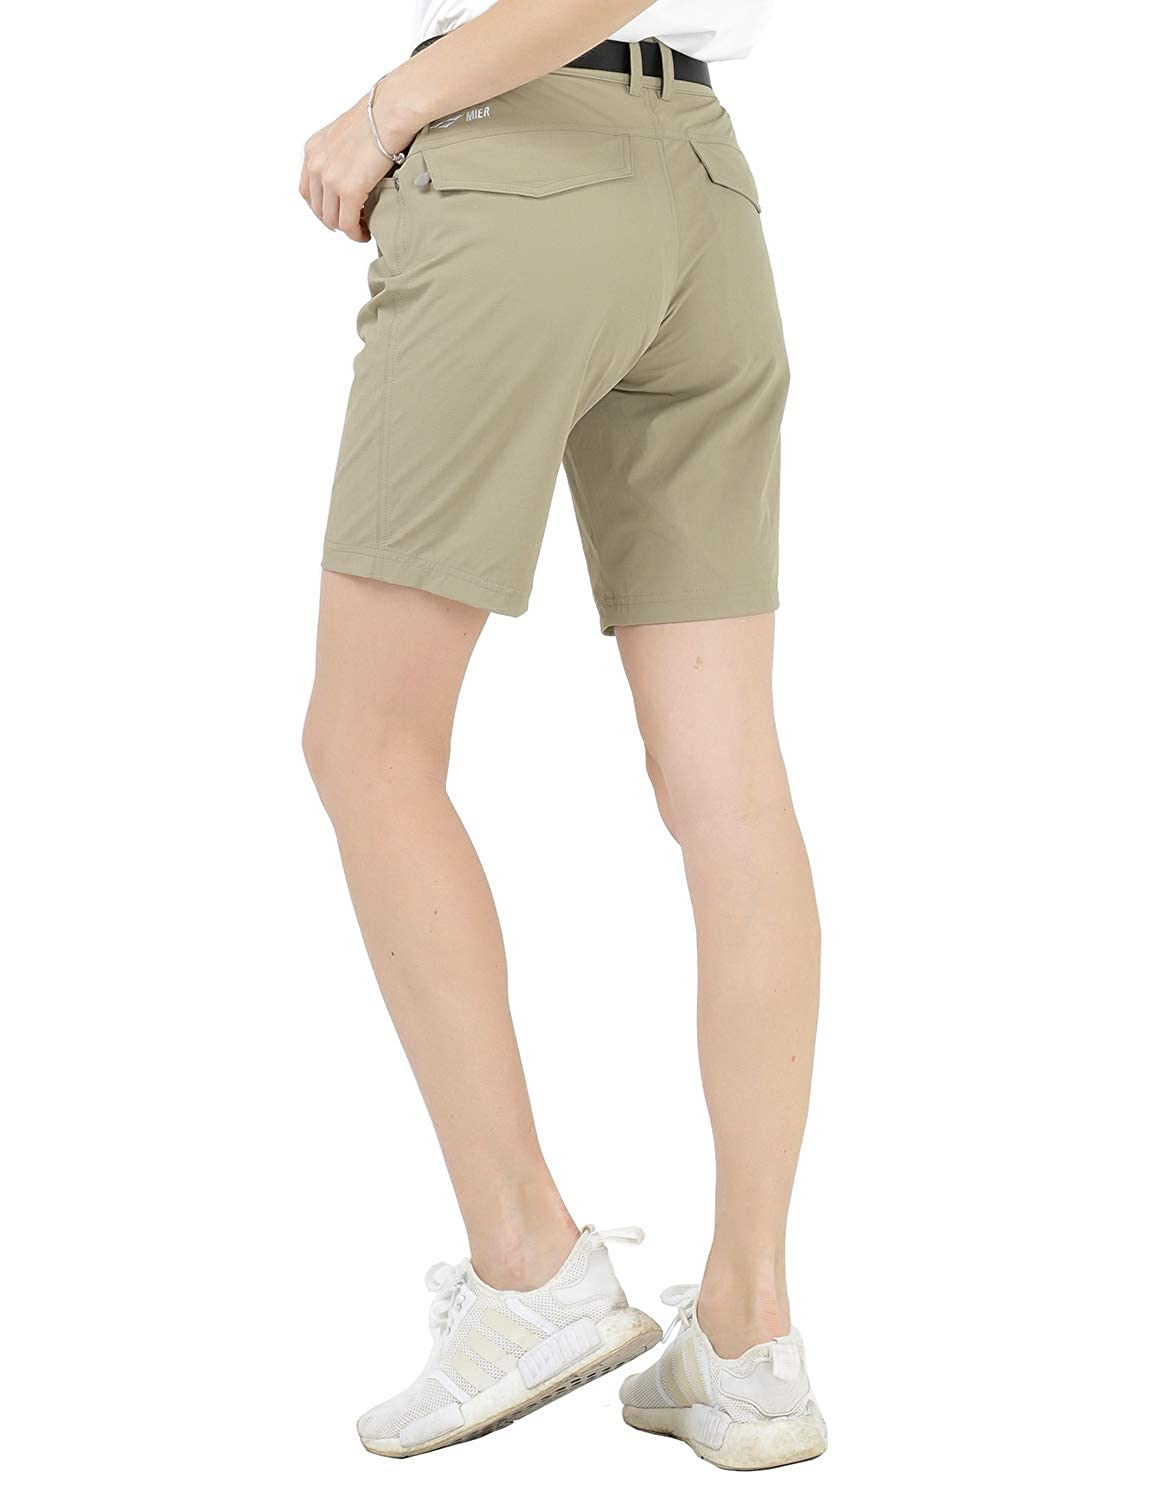 MIER Womens Quick Dry Outdoor Shorts Lightweight Stretch Nylon Hiking Shorts with 5 Pockets Water Resistant